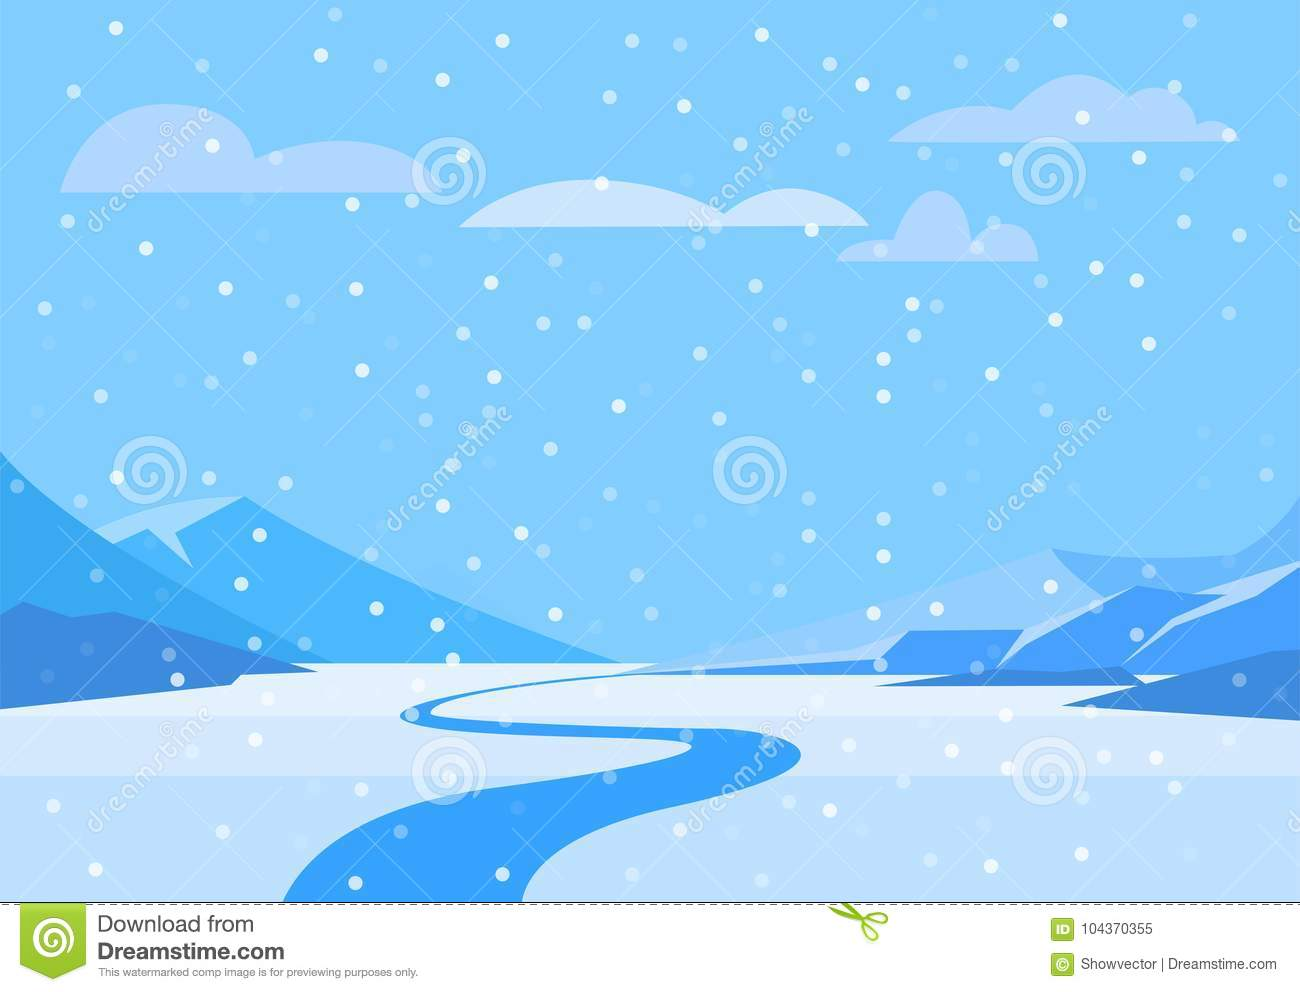 Winter Landscape With Christmas Tree Mountain Frozen Nature Wallpaper